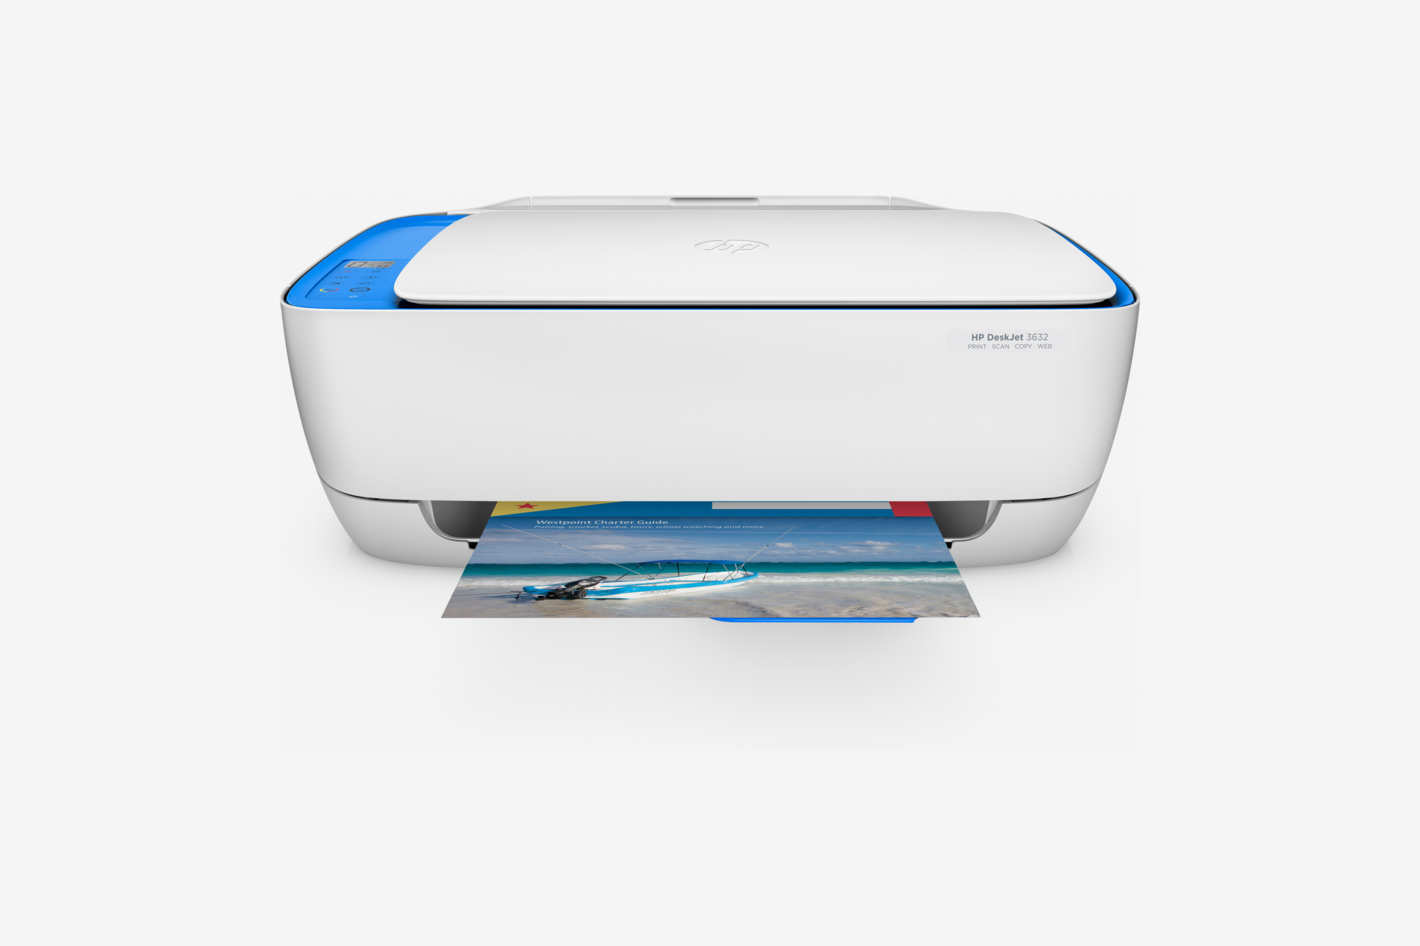 HP DeskJet 3632 All-in-One Wireless Printer/Copier/Scanner